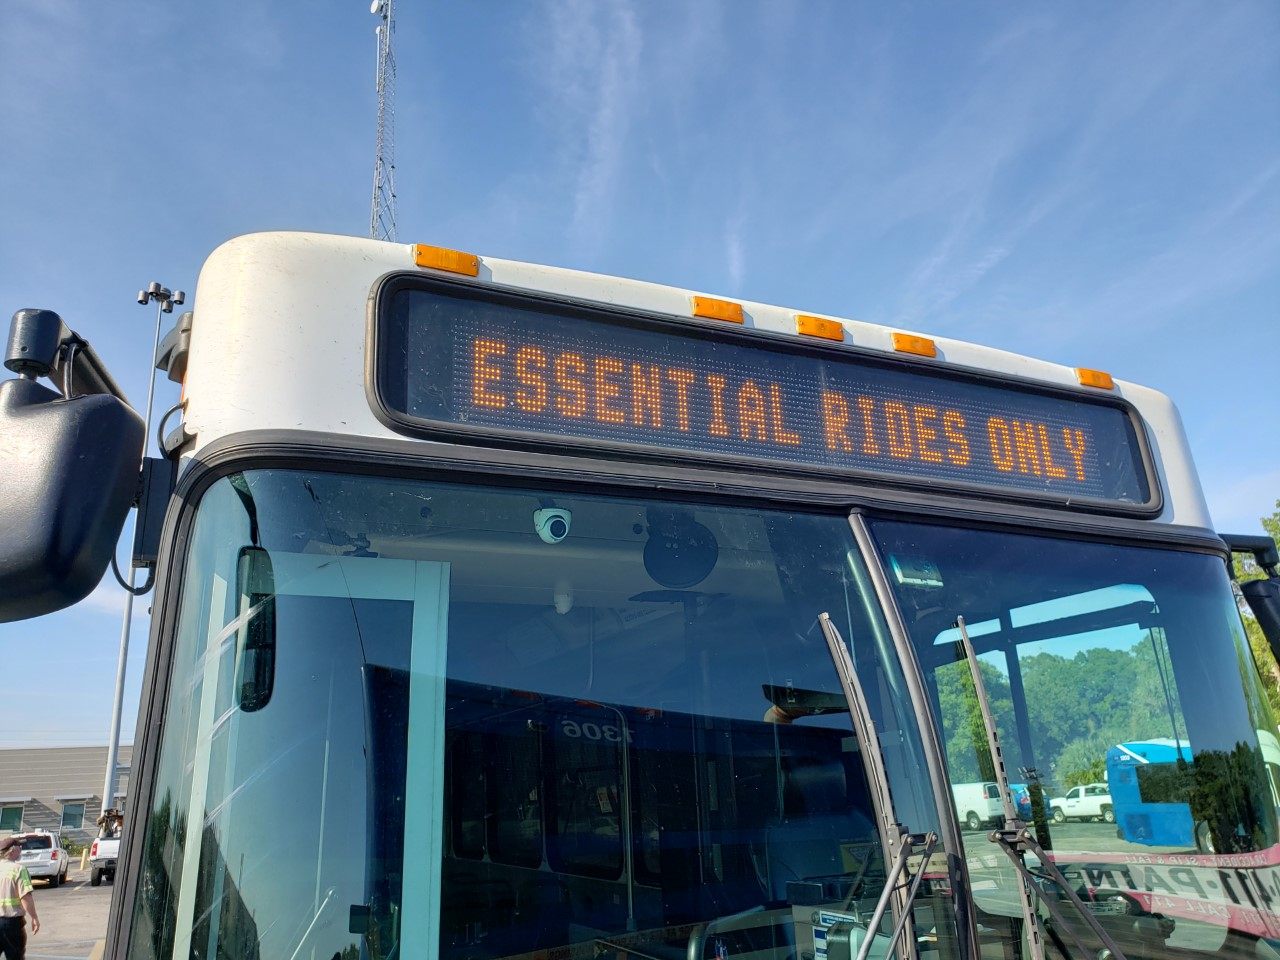 Parked bus has on their front LED sign, Essential Rides Only